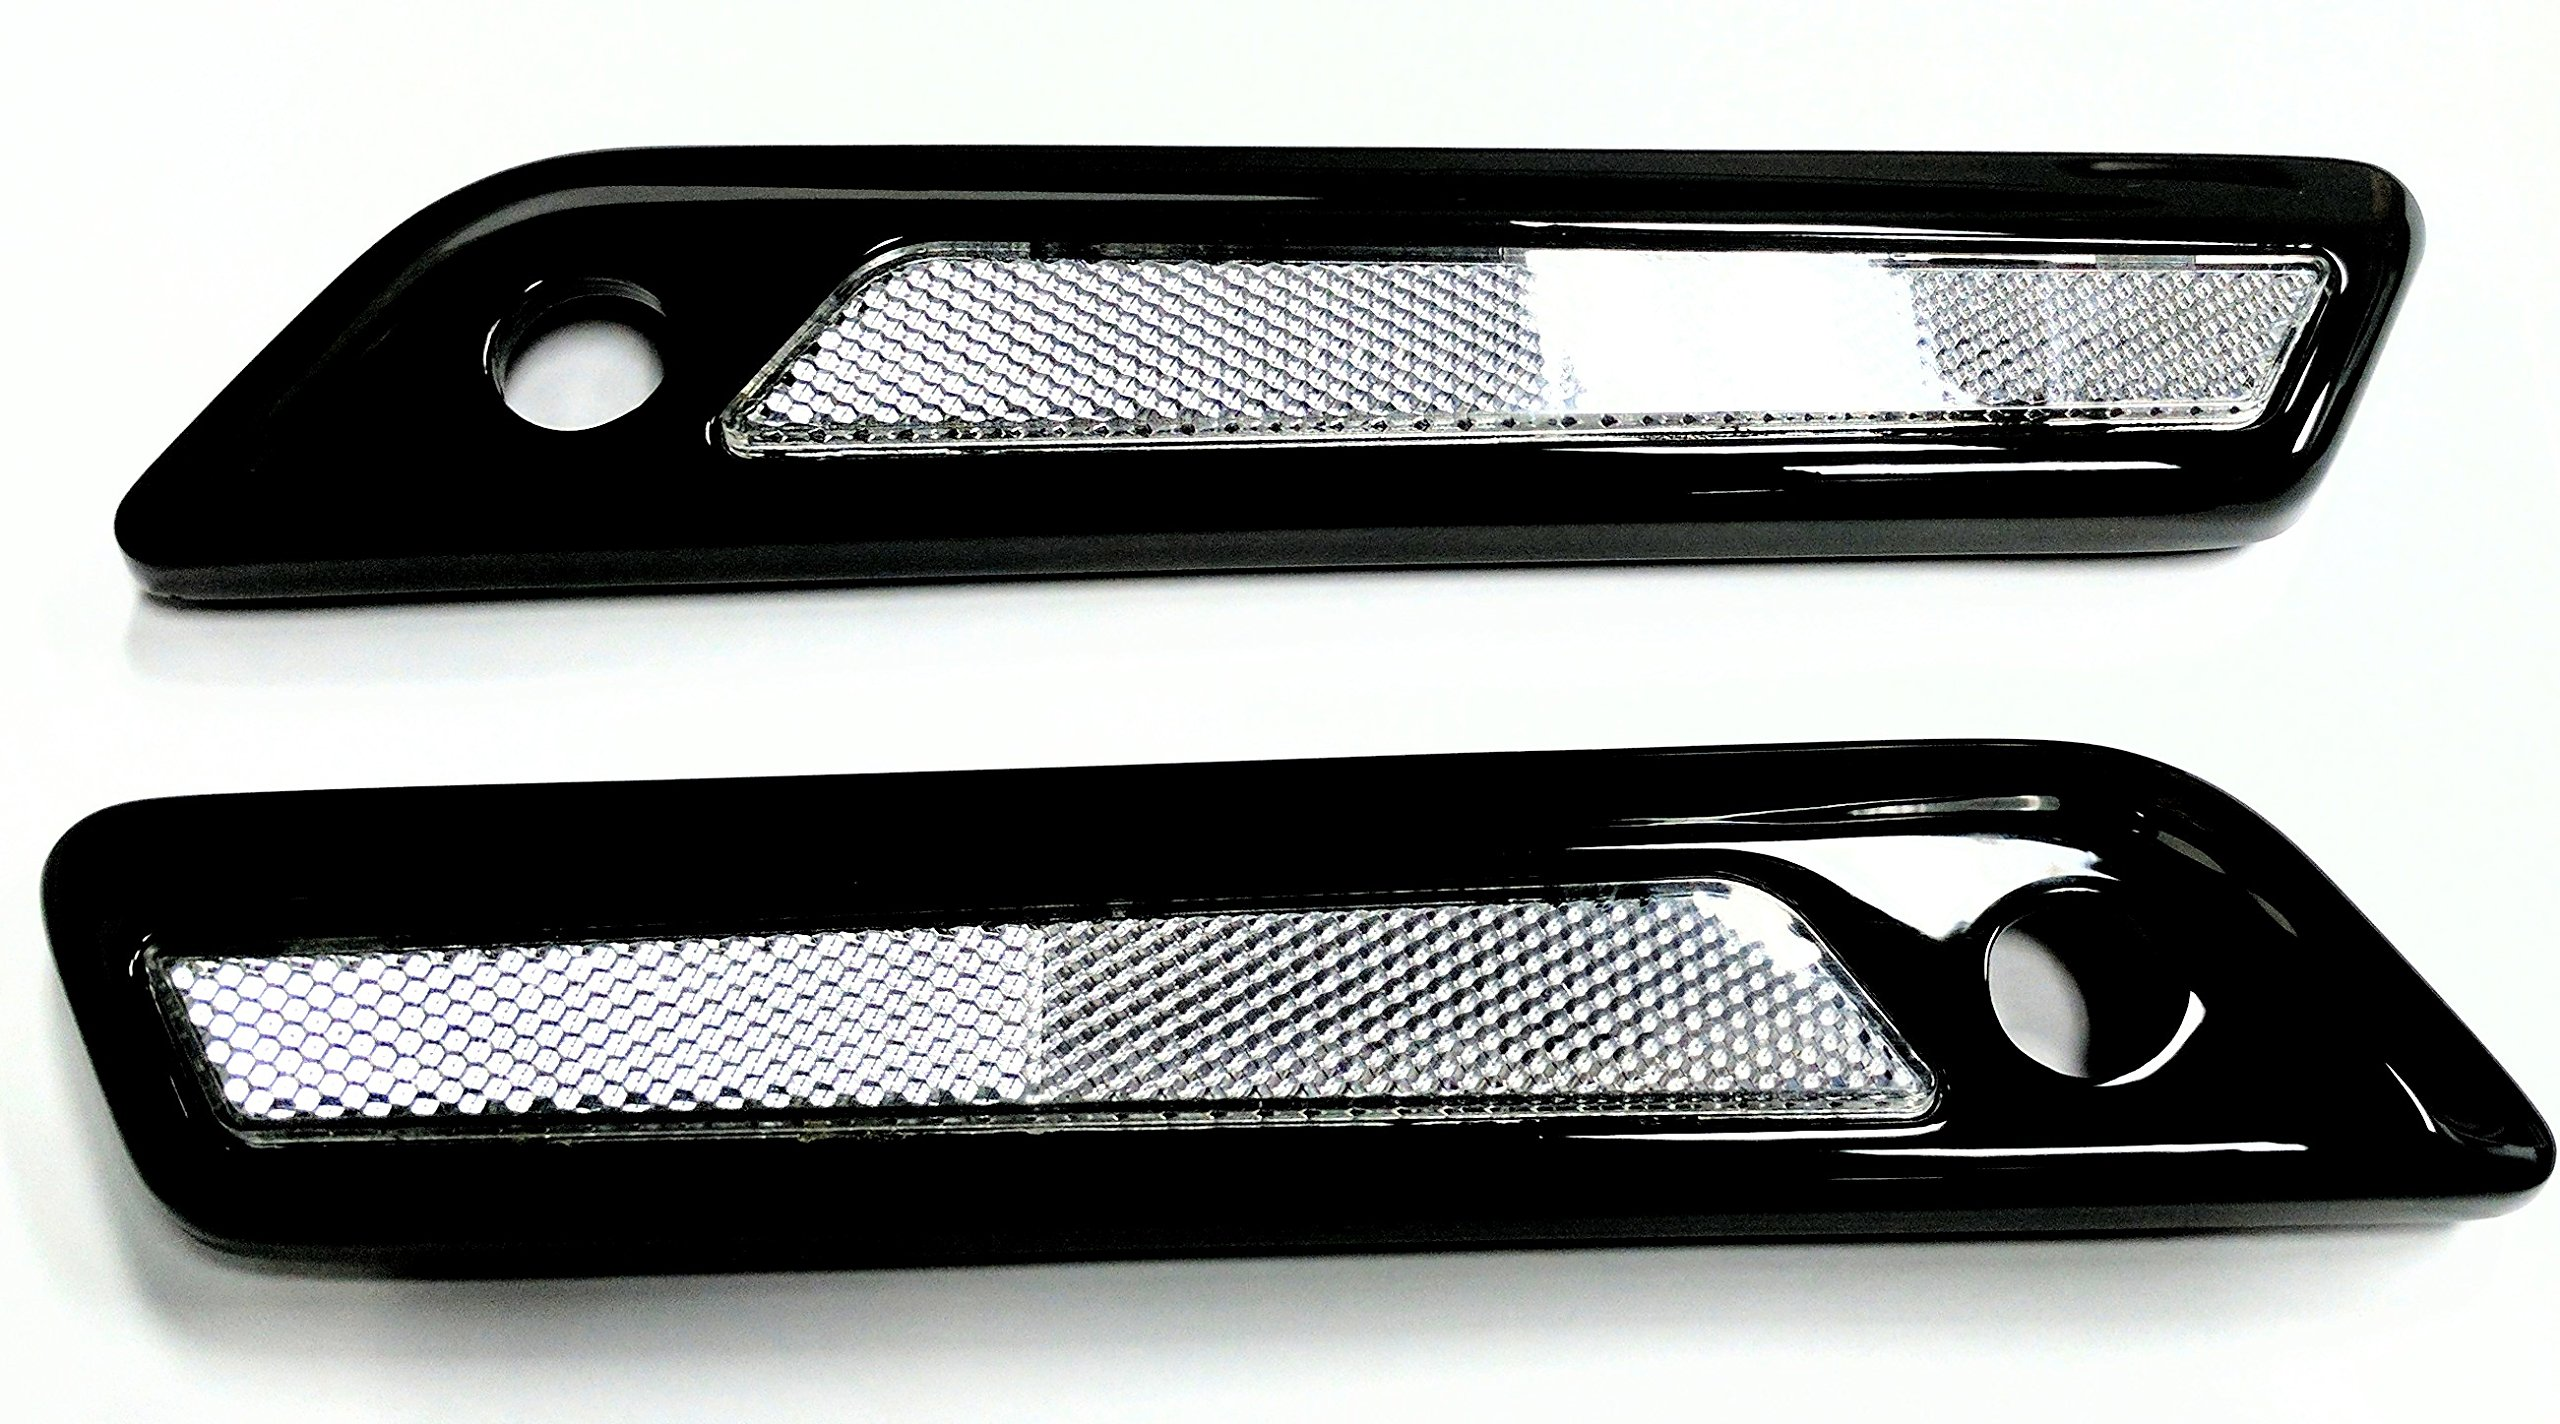 Powder Coated Black Metal Saddlebag Latch Covers with Clear Reflectors for Harley-Davidson ABS Touring Saddlebags 2014-2017 by CaliBikerClub